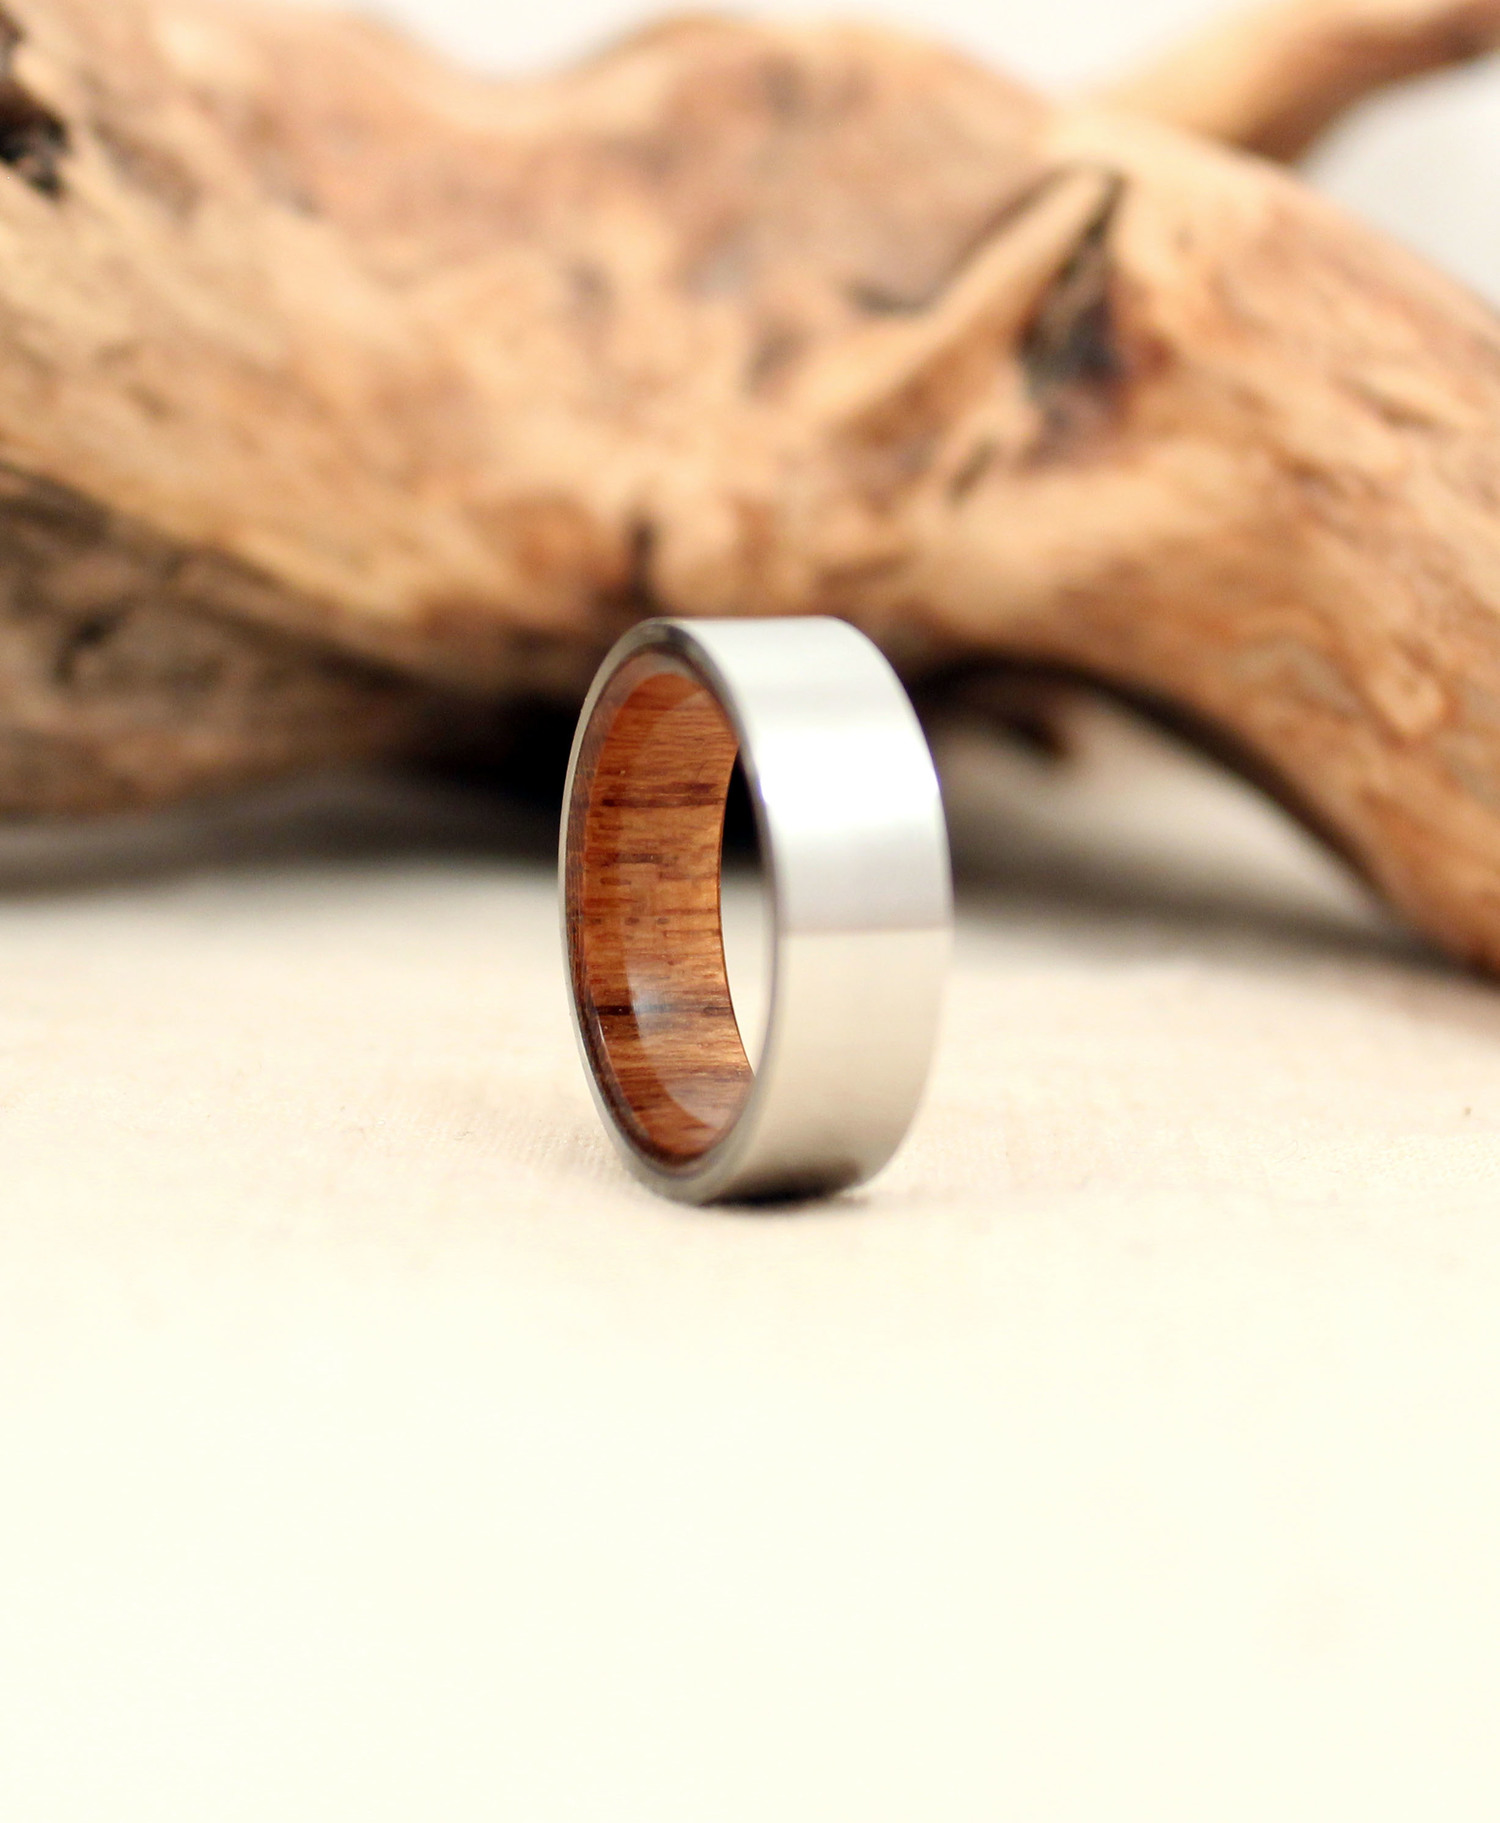 wooden carolina uss limited wood teak from edition rings north the wedding new ring of